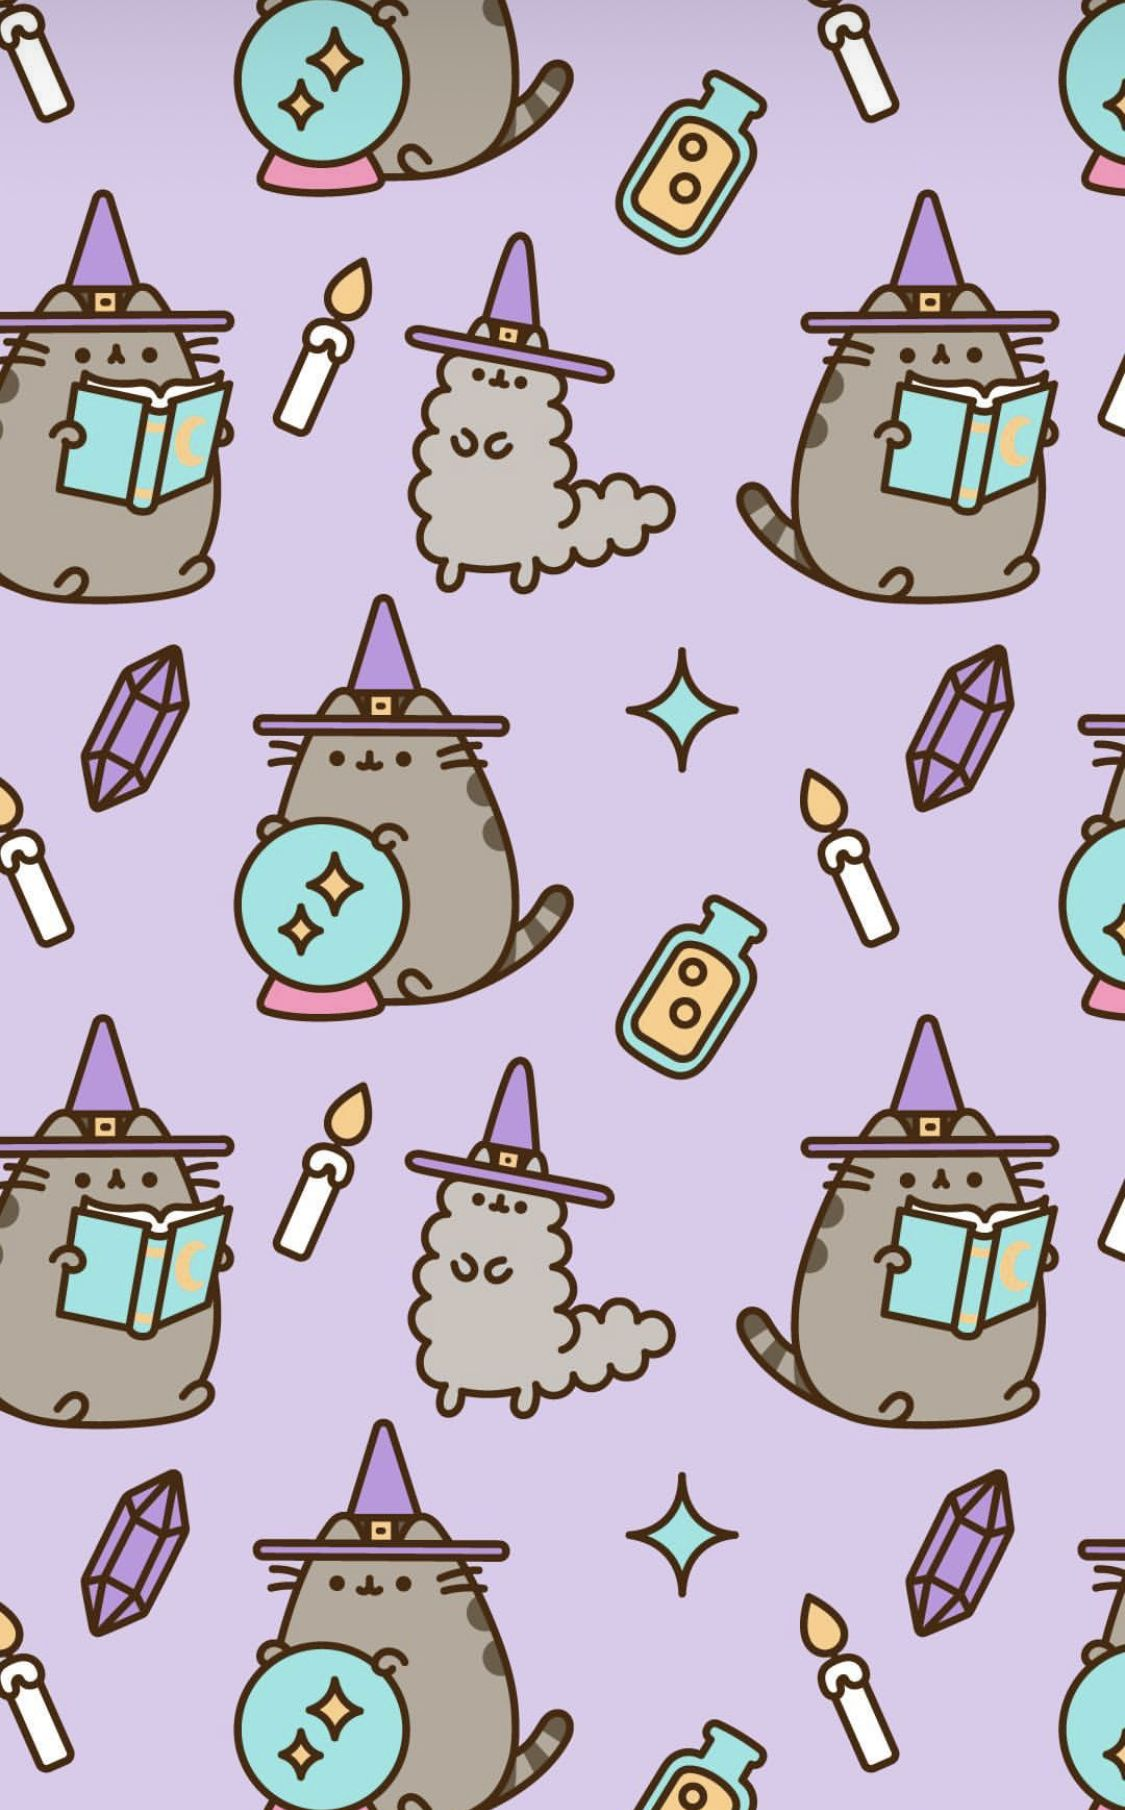 Meowgic Gato Pusheen, Halloween Backgrounds, Halloween Wallpaper, Cute Backgrounds, Phone Backgrounds,